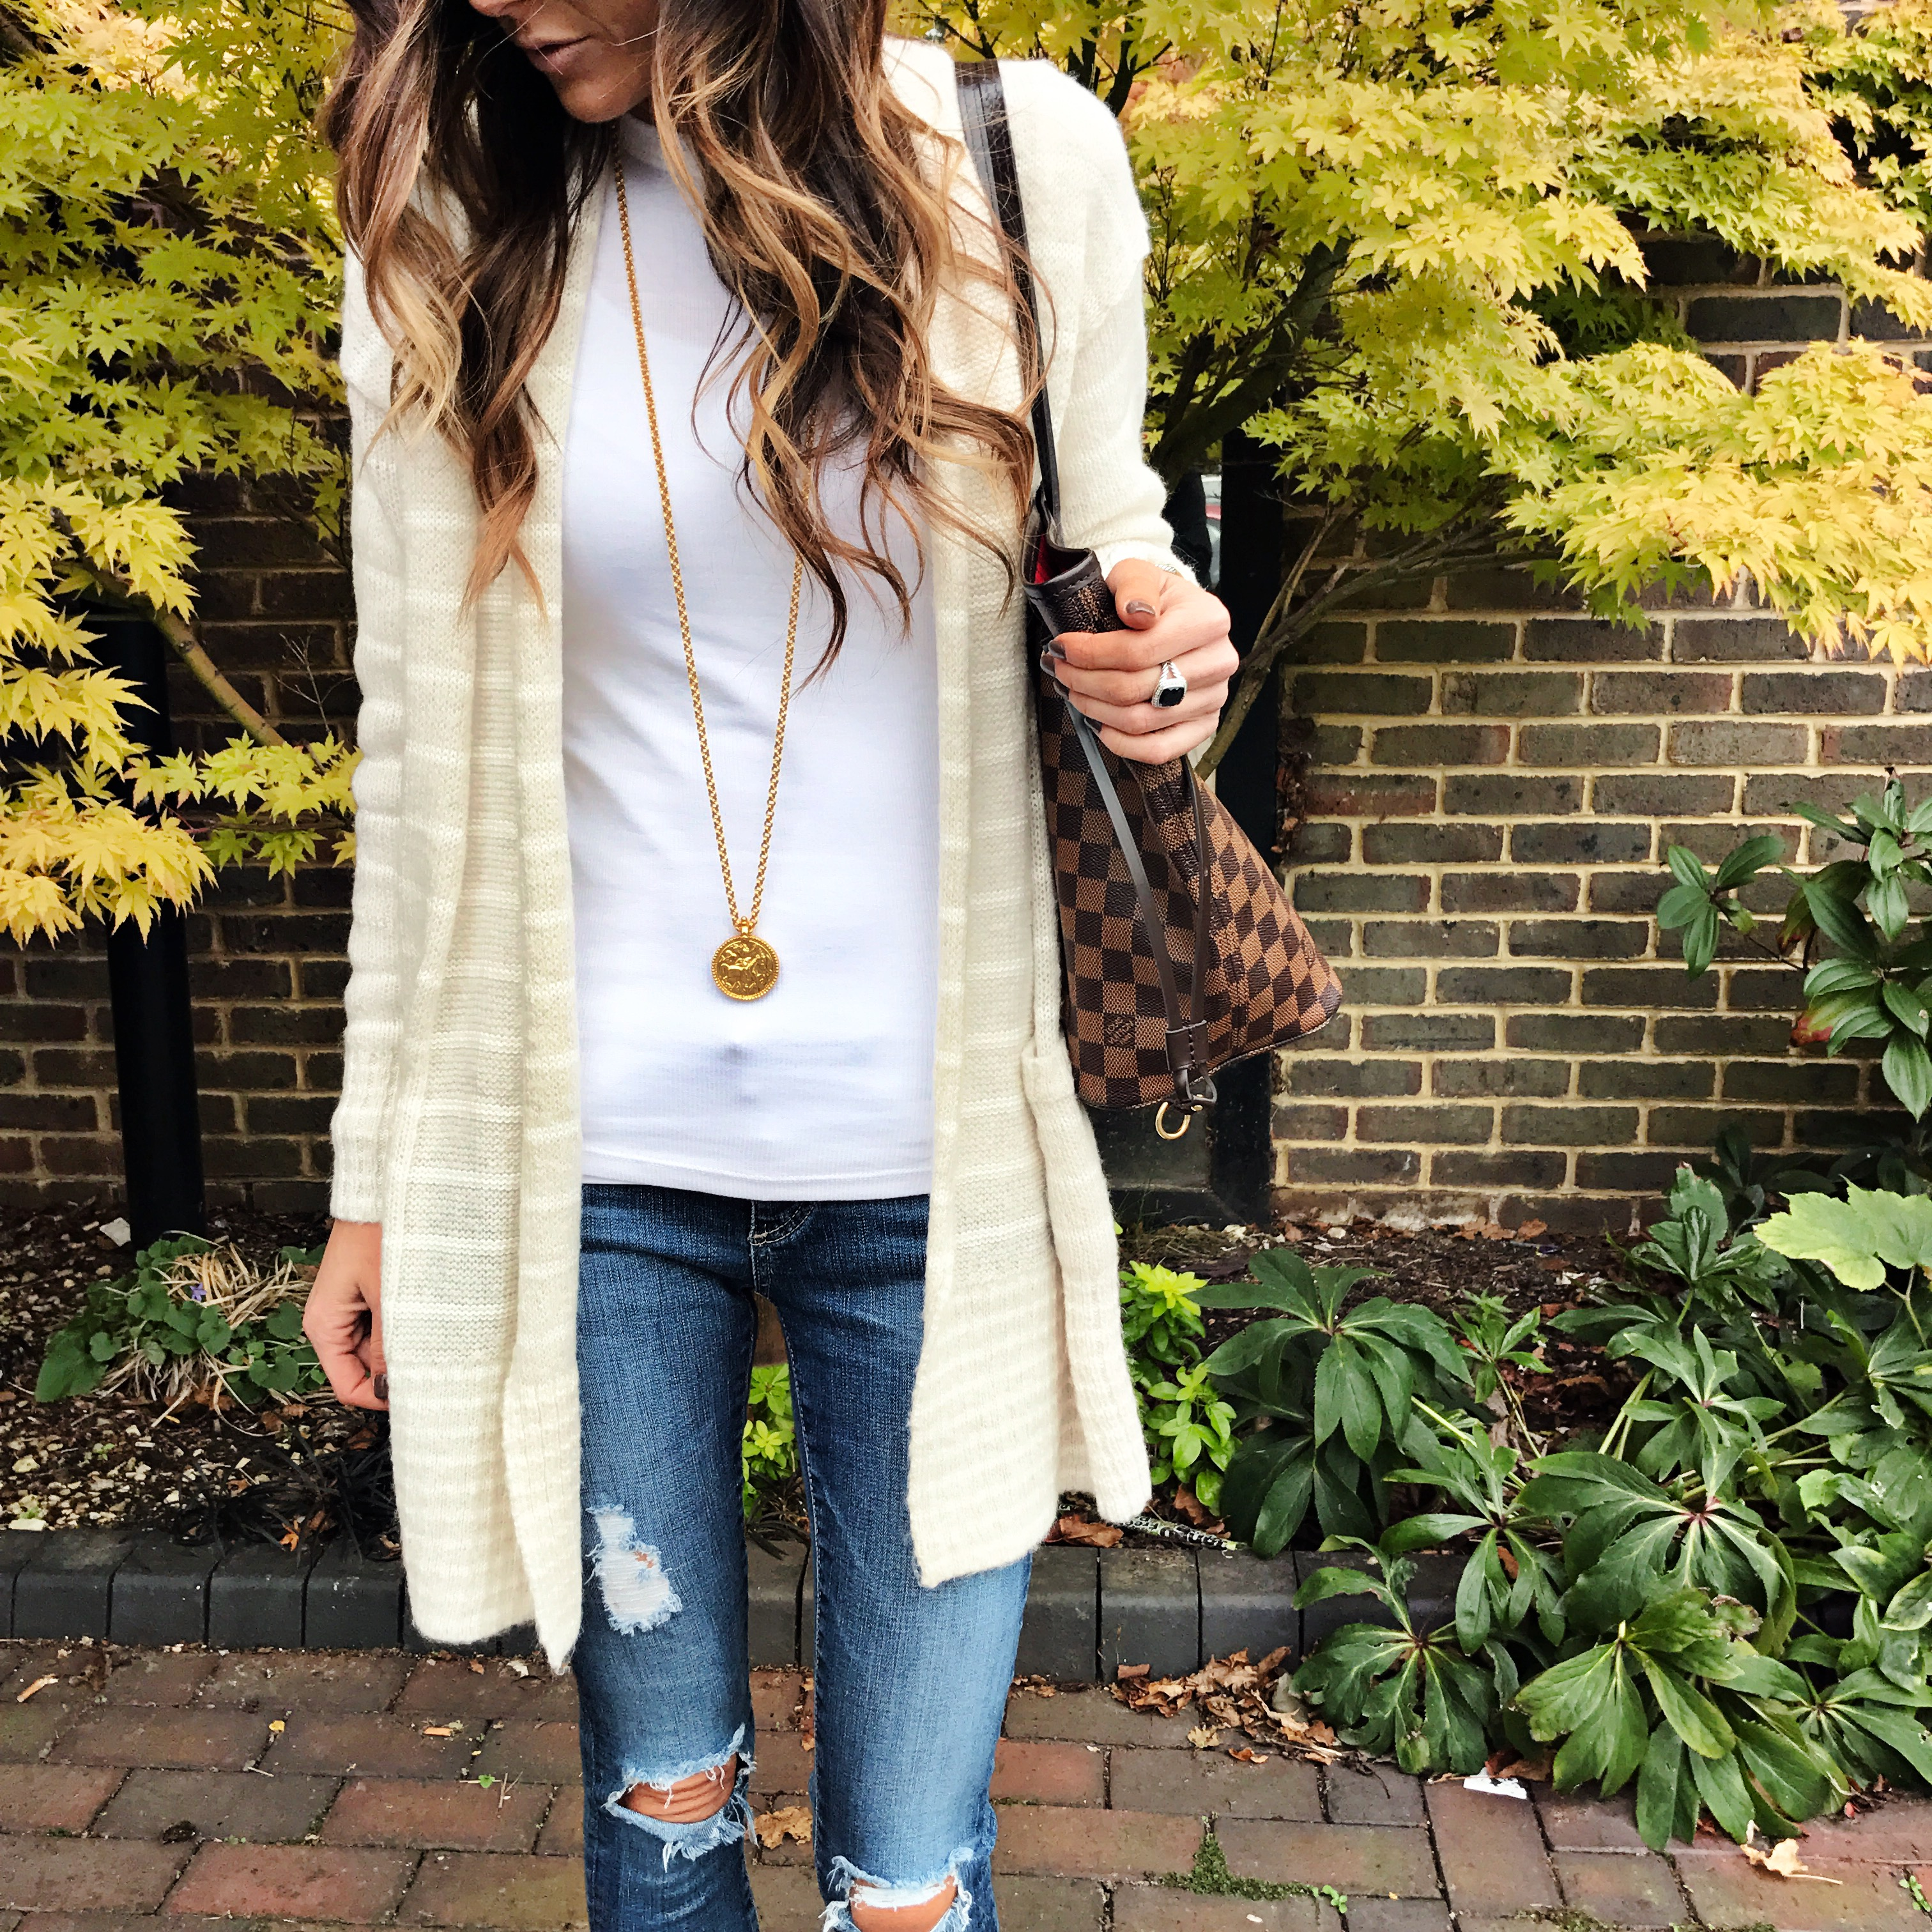 sequins and things, instagram roundup, outfit selfies, ootd